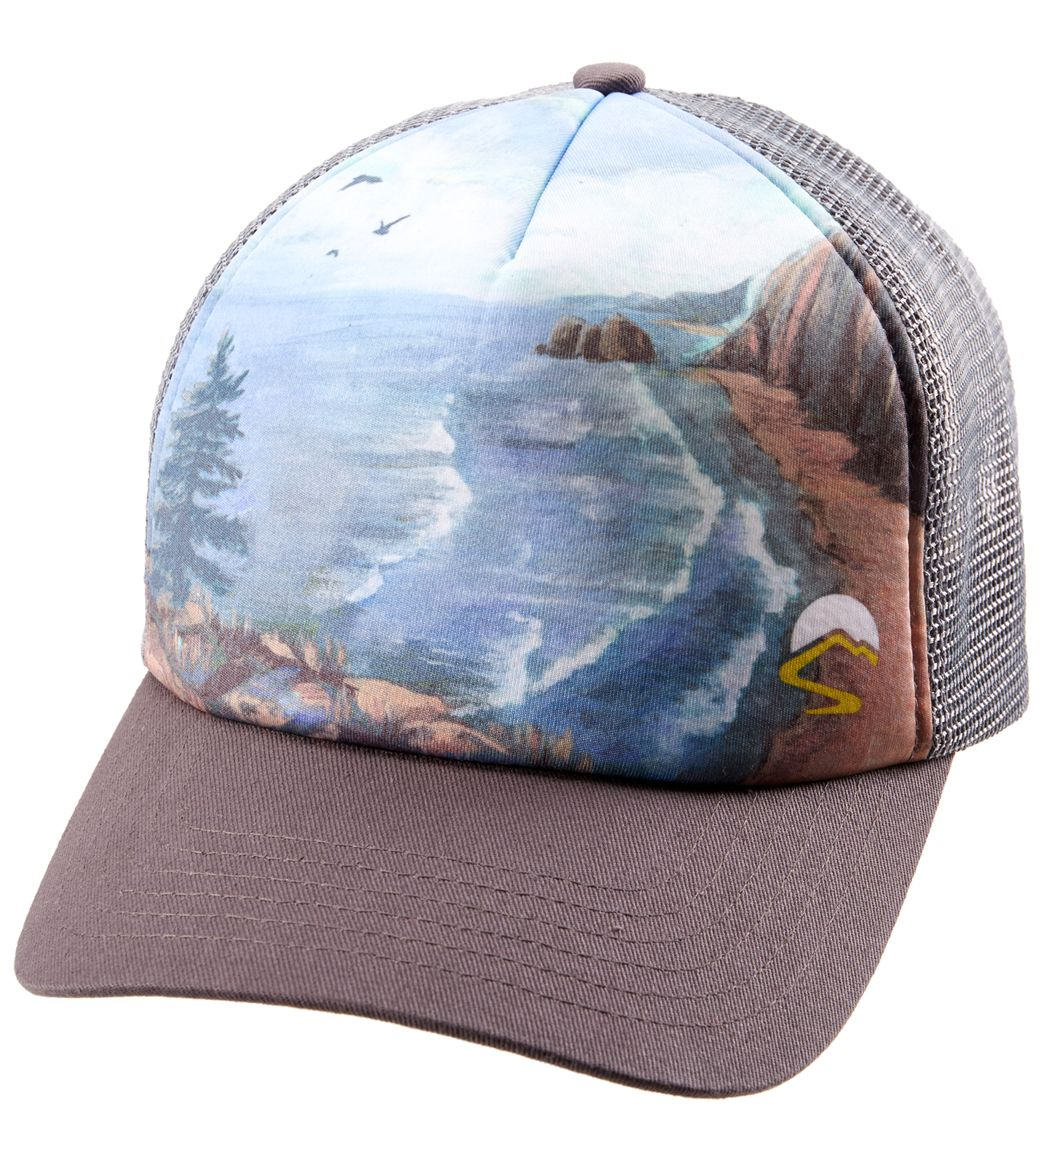 187ad55aaa794 Sunday Afternoons Northwest Trucker Hat (Unisex) at SwimOutlet.com